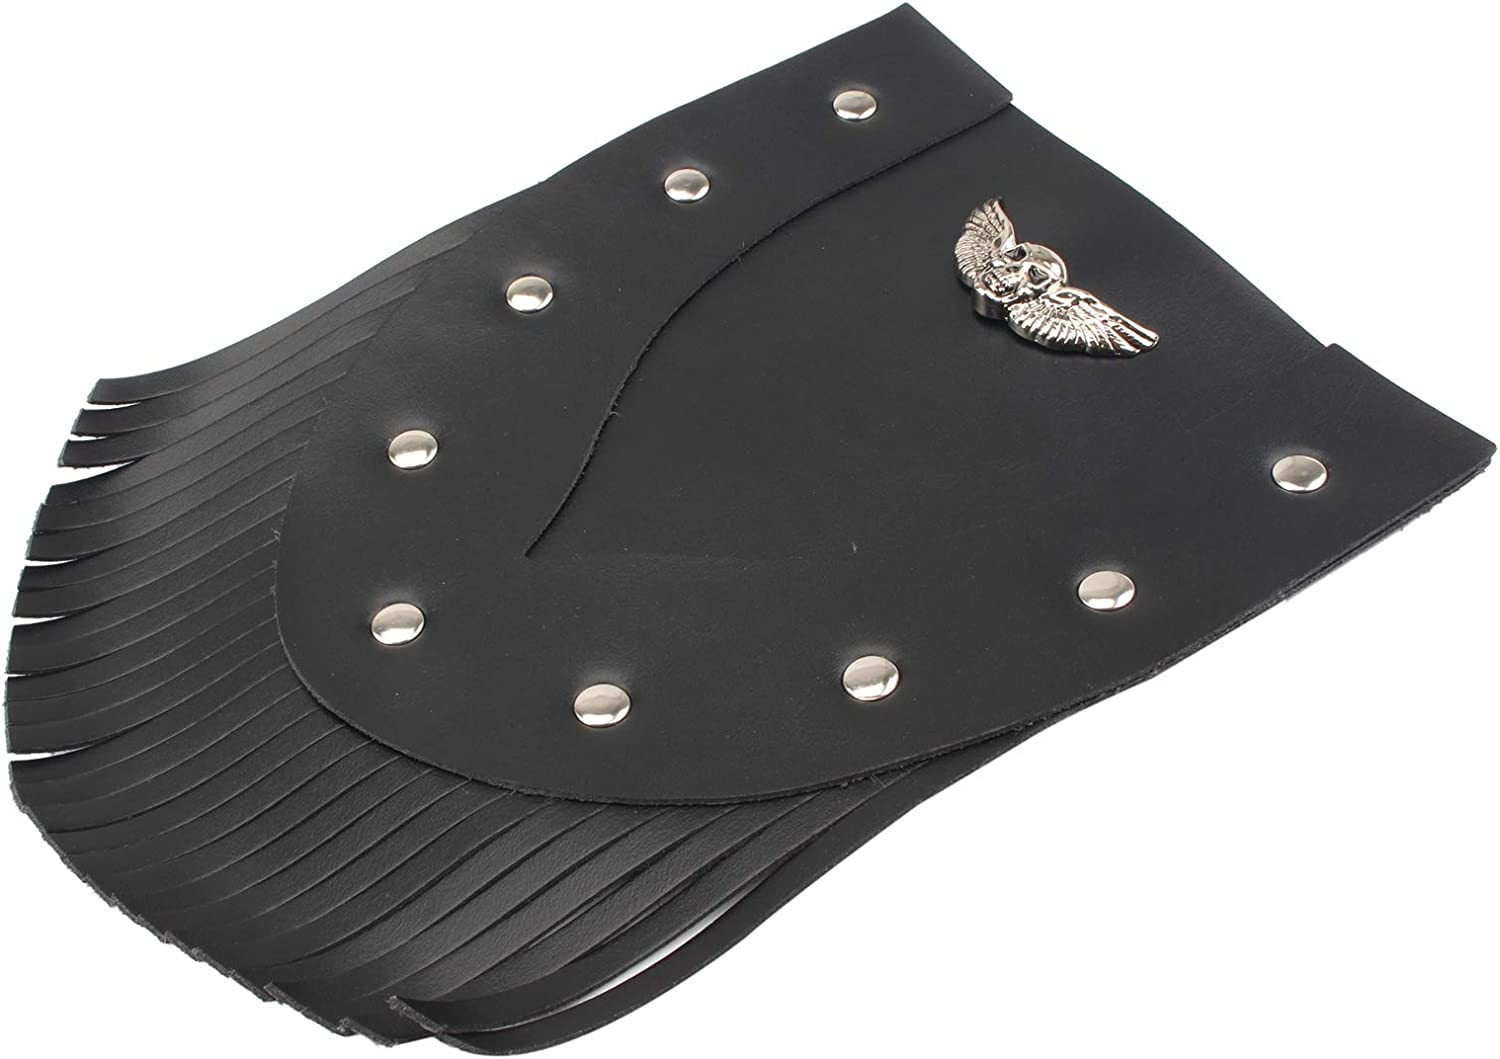 Front Fender Leather Mud Flap Mudguard Cover Skull Vintage for Harley Sportster XL883 Iron 883 Softail Dyna